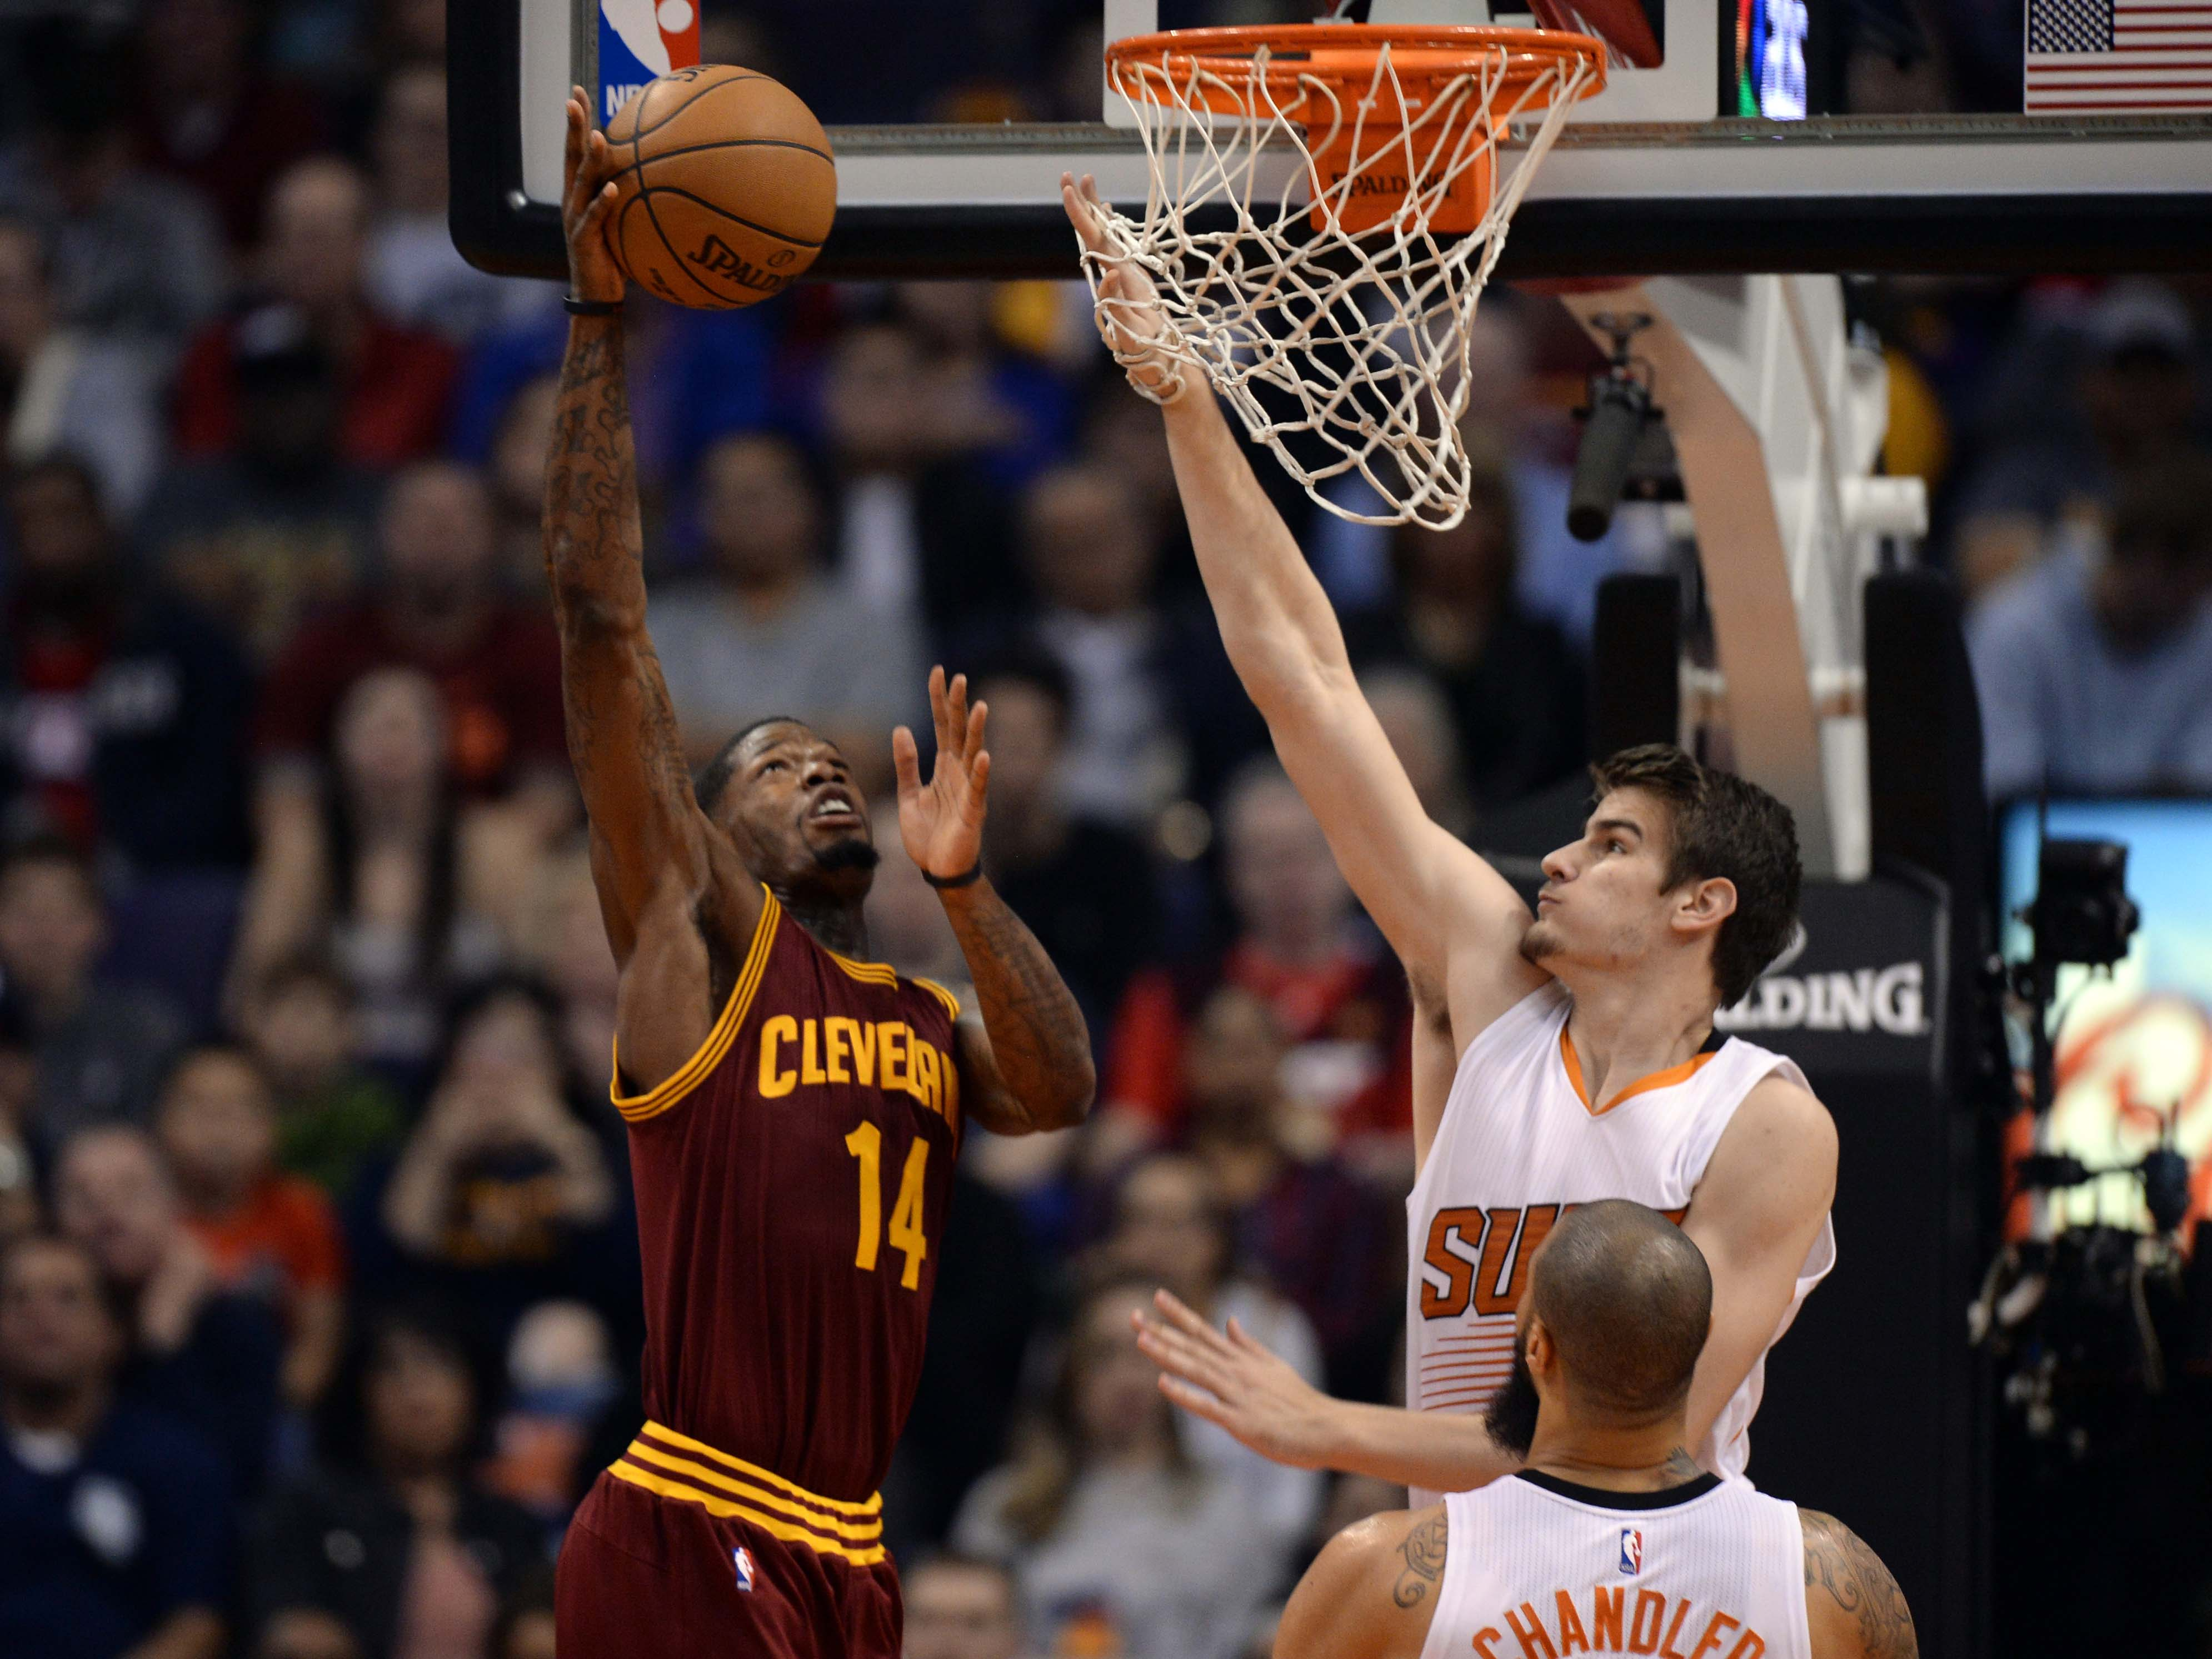 Jan 8, 2017; Phoenix, AZ, USA; Cleveland Cavaliers guard DeAndre Liggins (14) attempts a shot over Phoenix Suns forward Dragan Bender (35) during the first half at Talking Stick Resort Arena. Mandatory Credit: Joe Camporeale-USA TODAY Sports